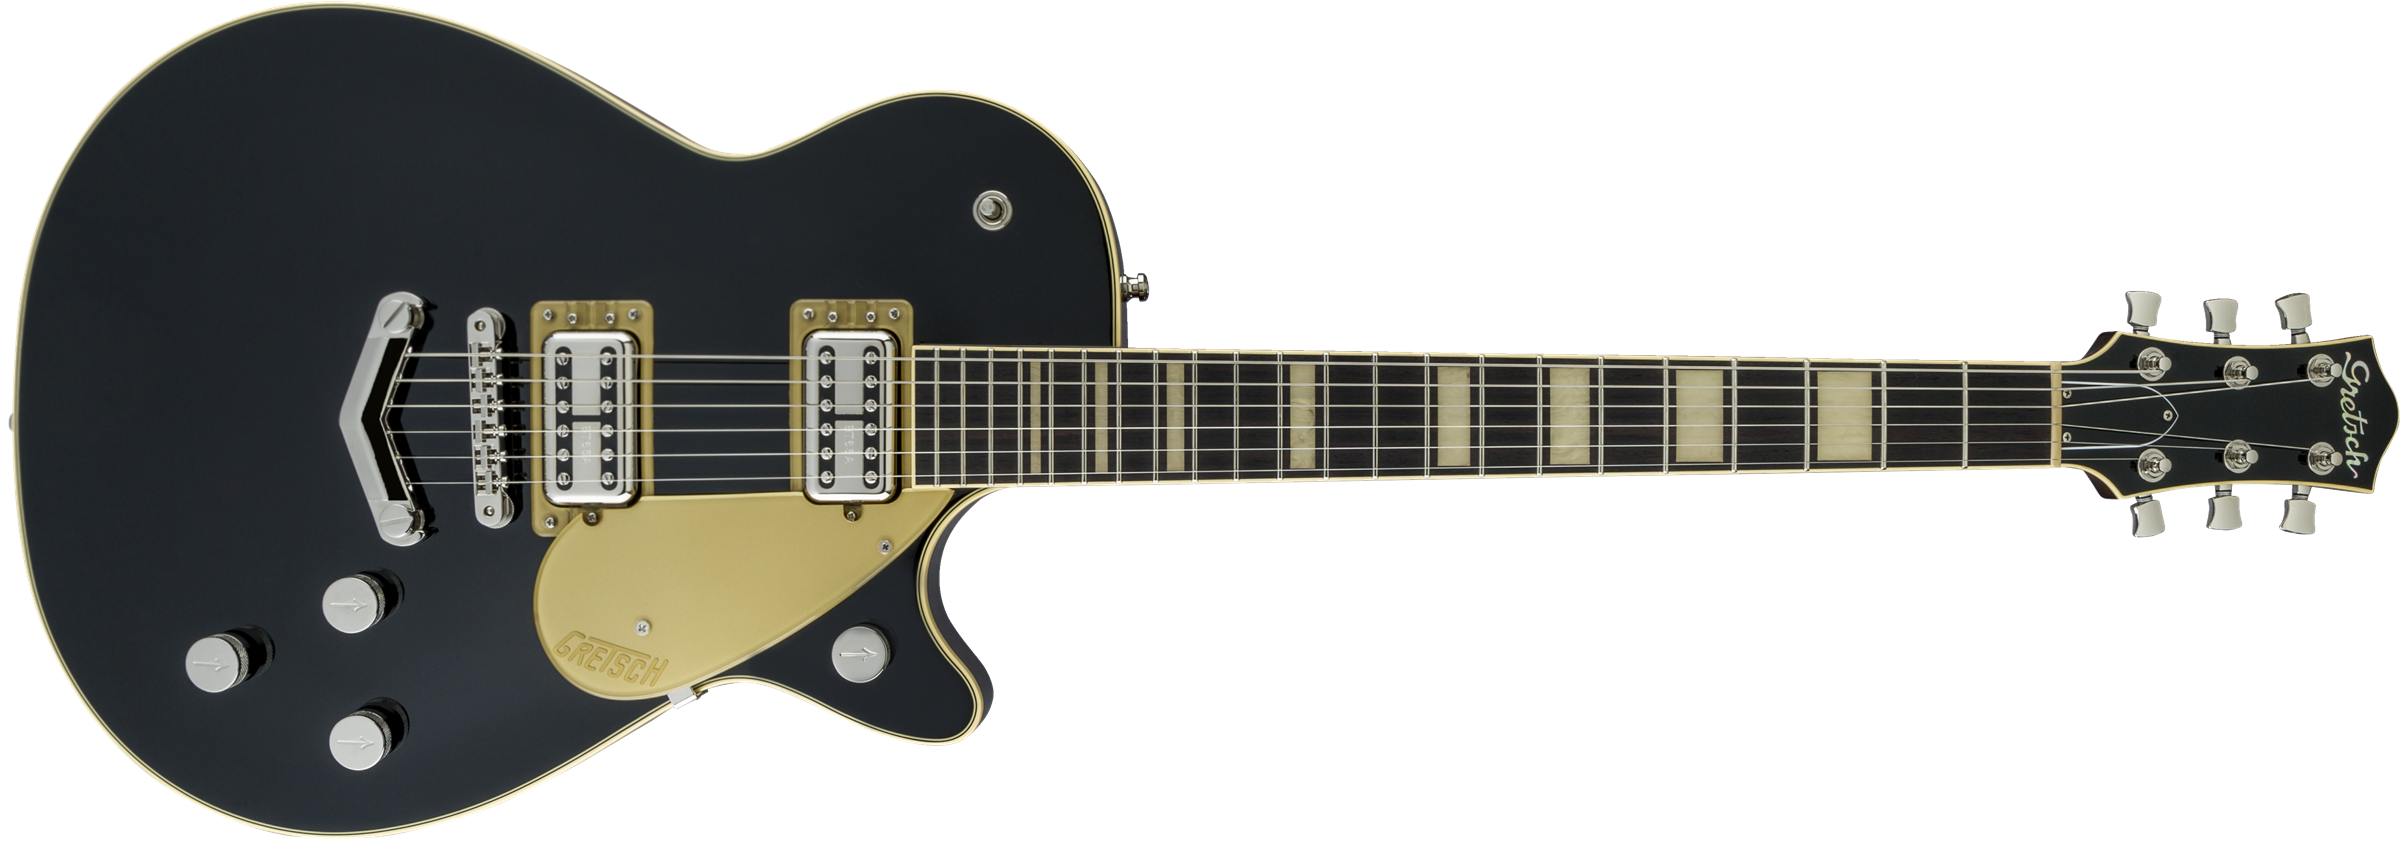 Gretsch G6228 Players Edition Jet BT with V-Stoptail - Black